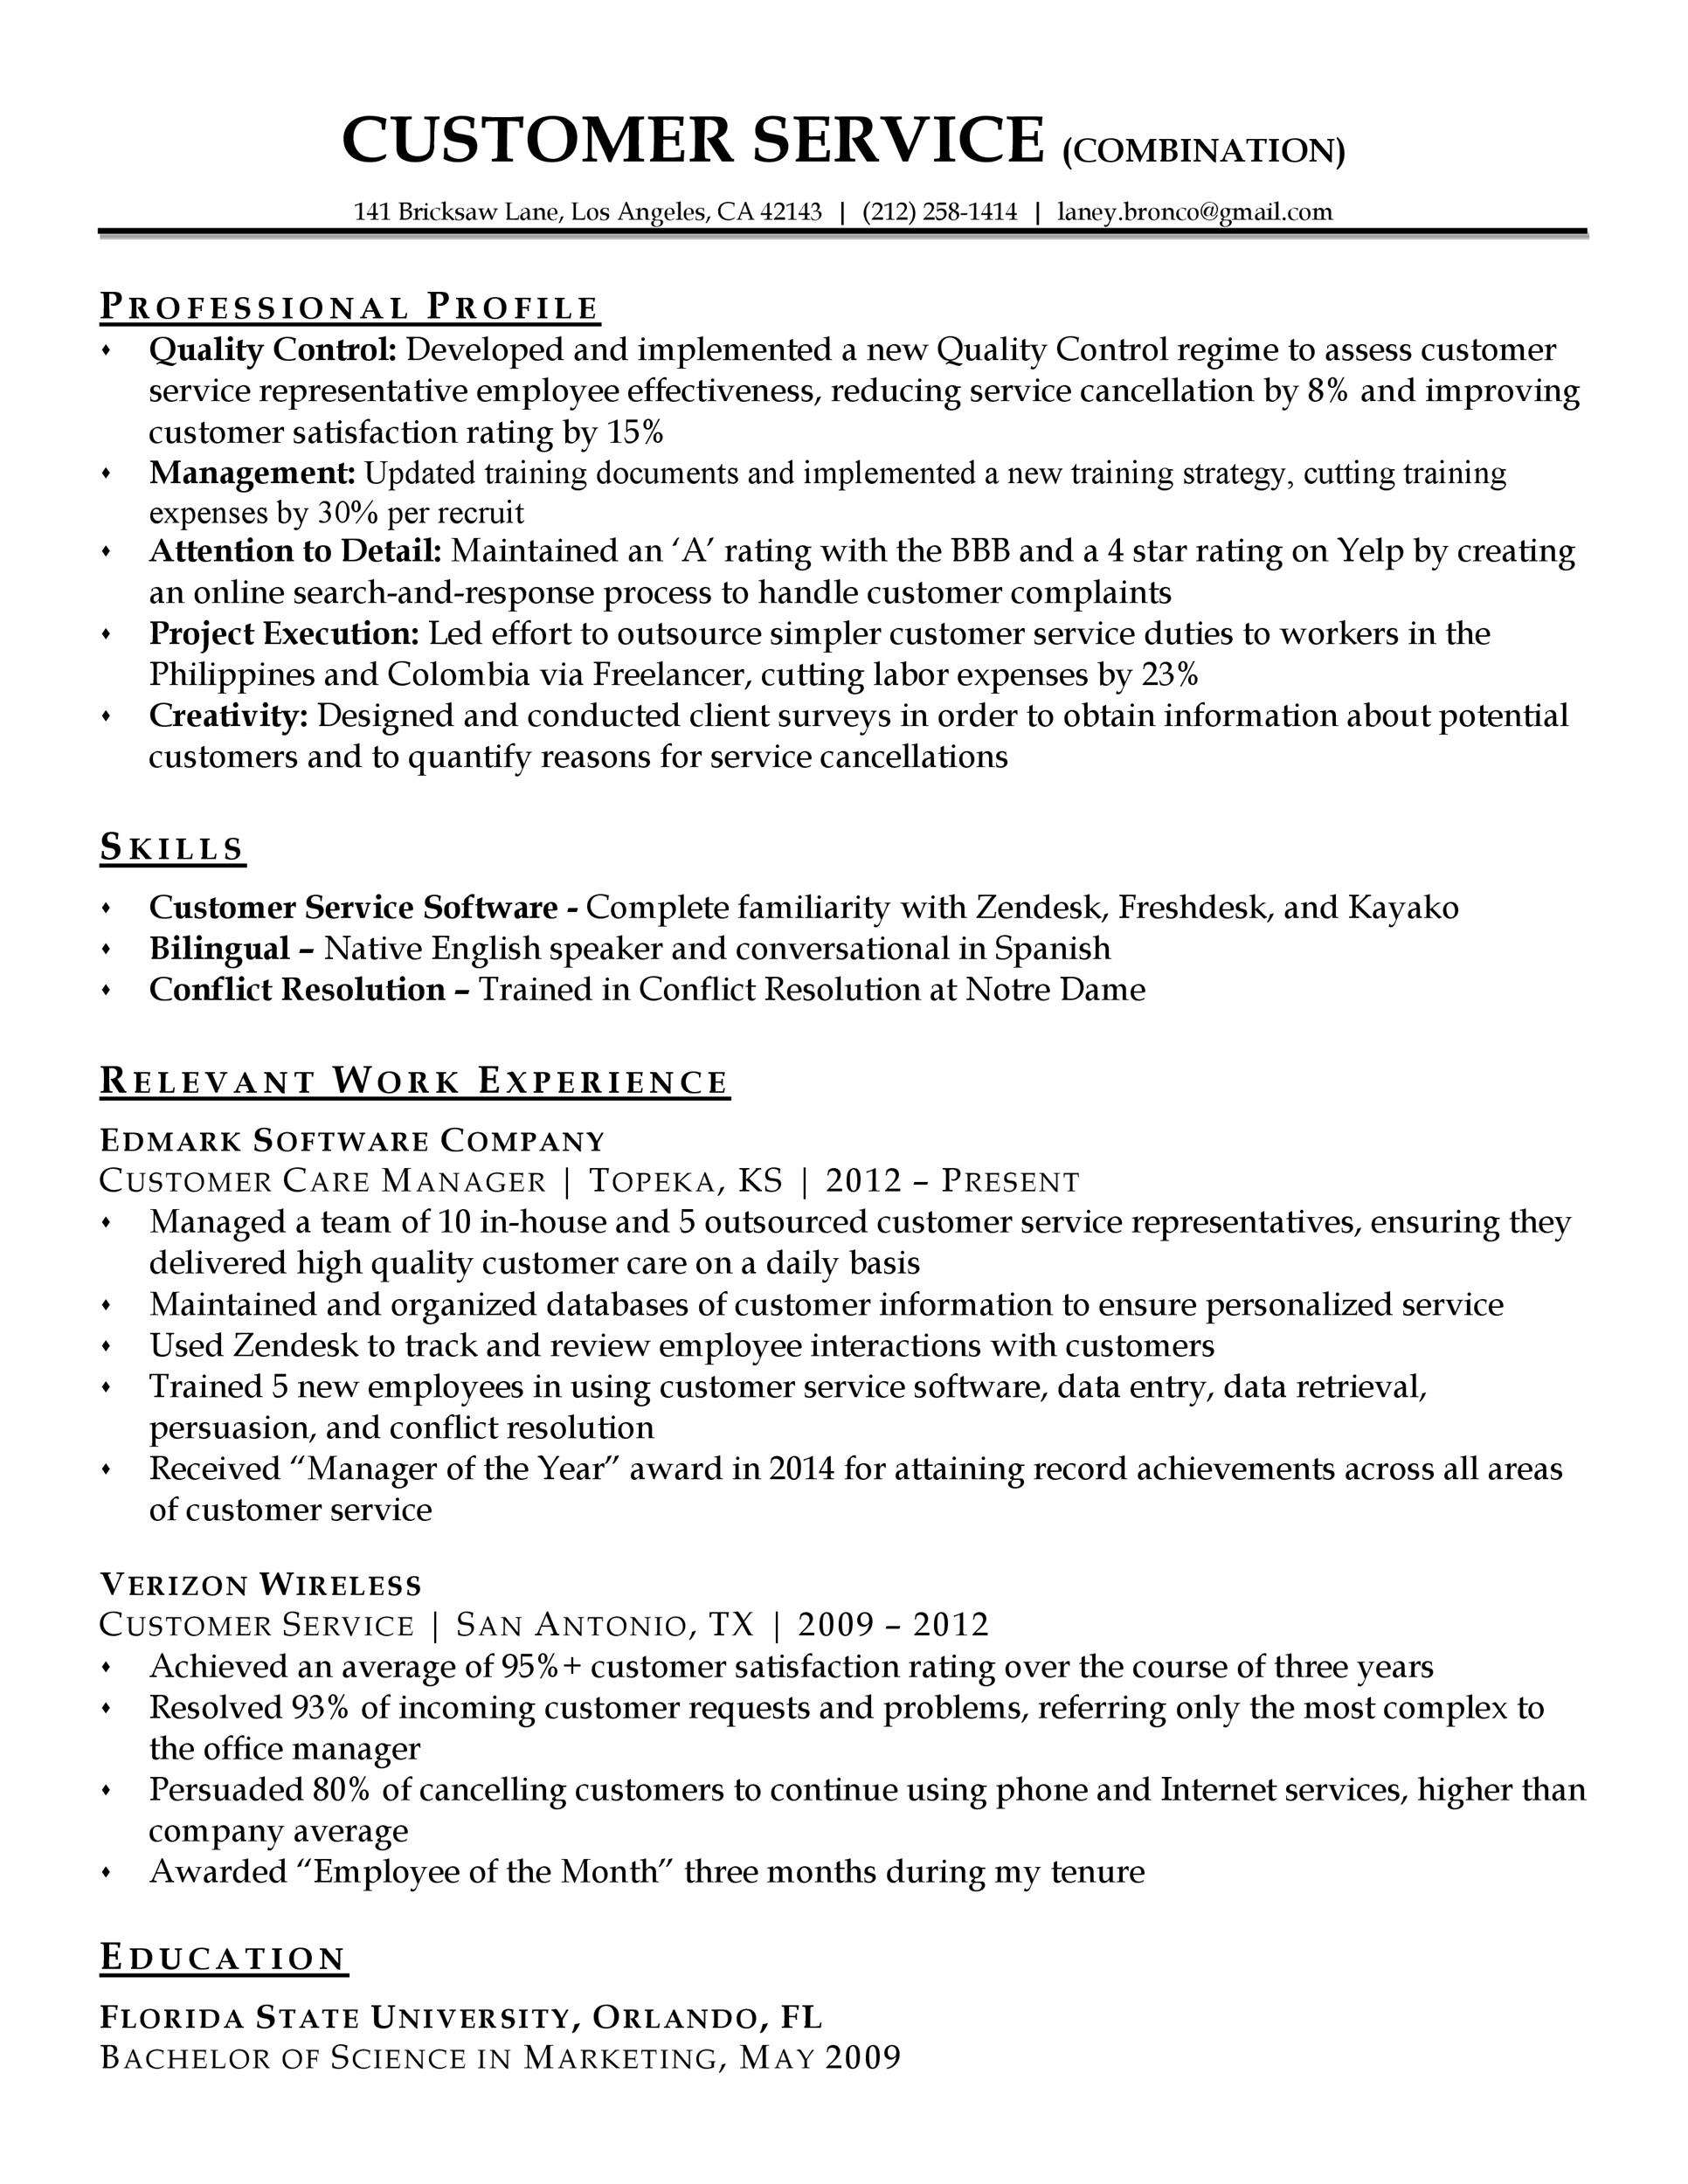 printable customer service resume template 01 - Free Customer Service Resume Templates